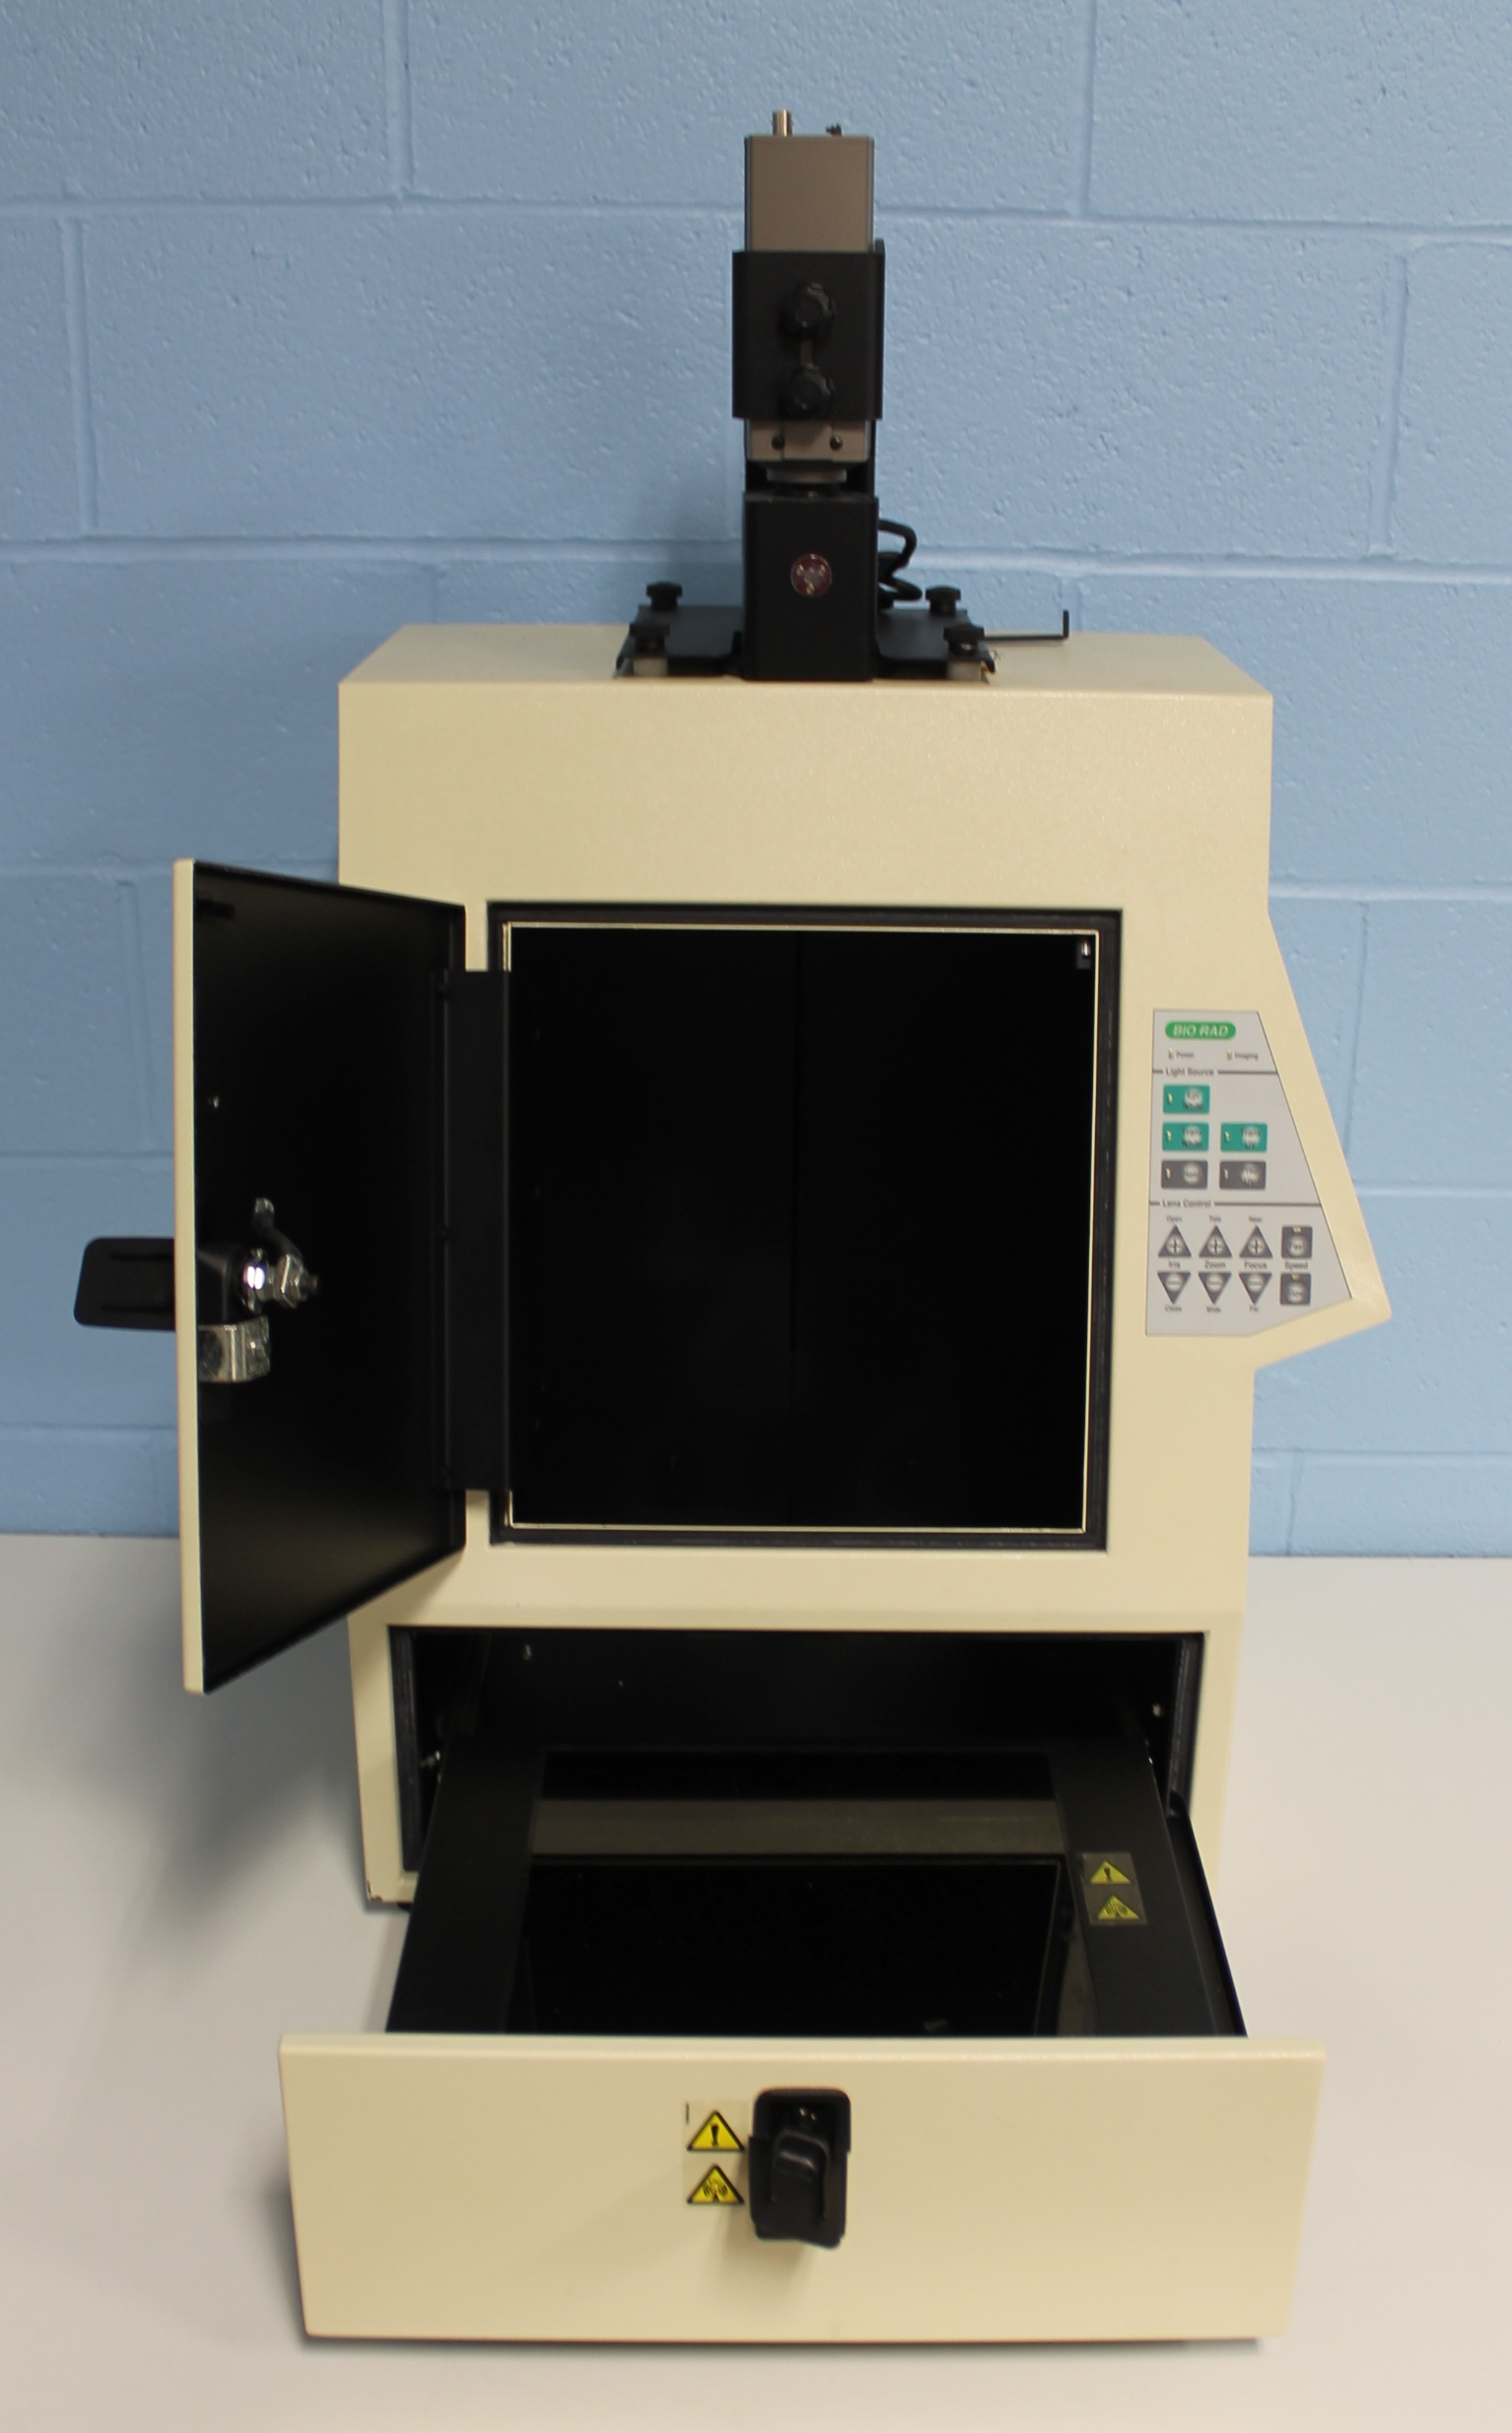 Refurbished Bio Rad Gel Doc 2000 Imaging System